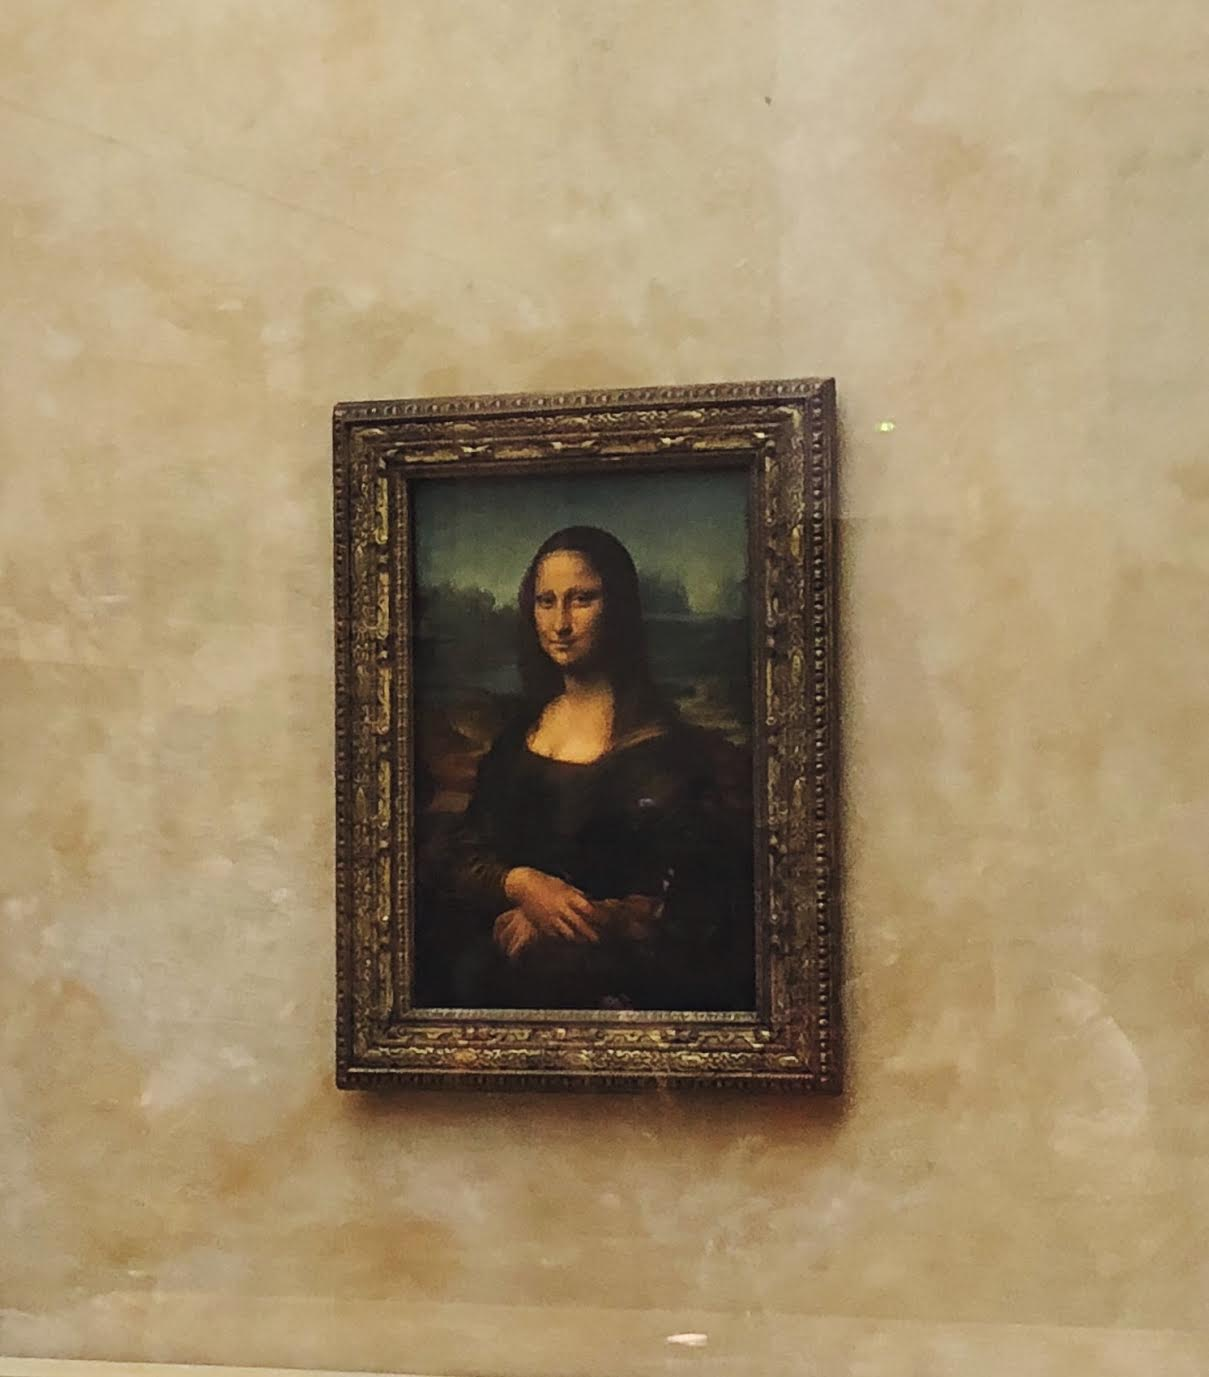 Muslim-travel-guide-Paris-Mona-Lisa.jpg